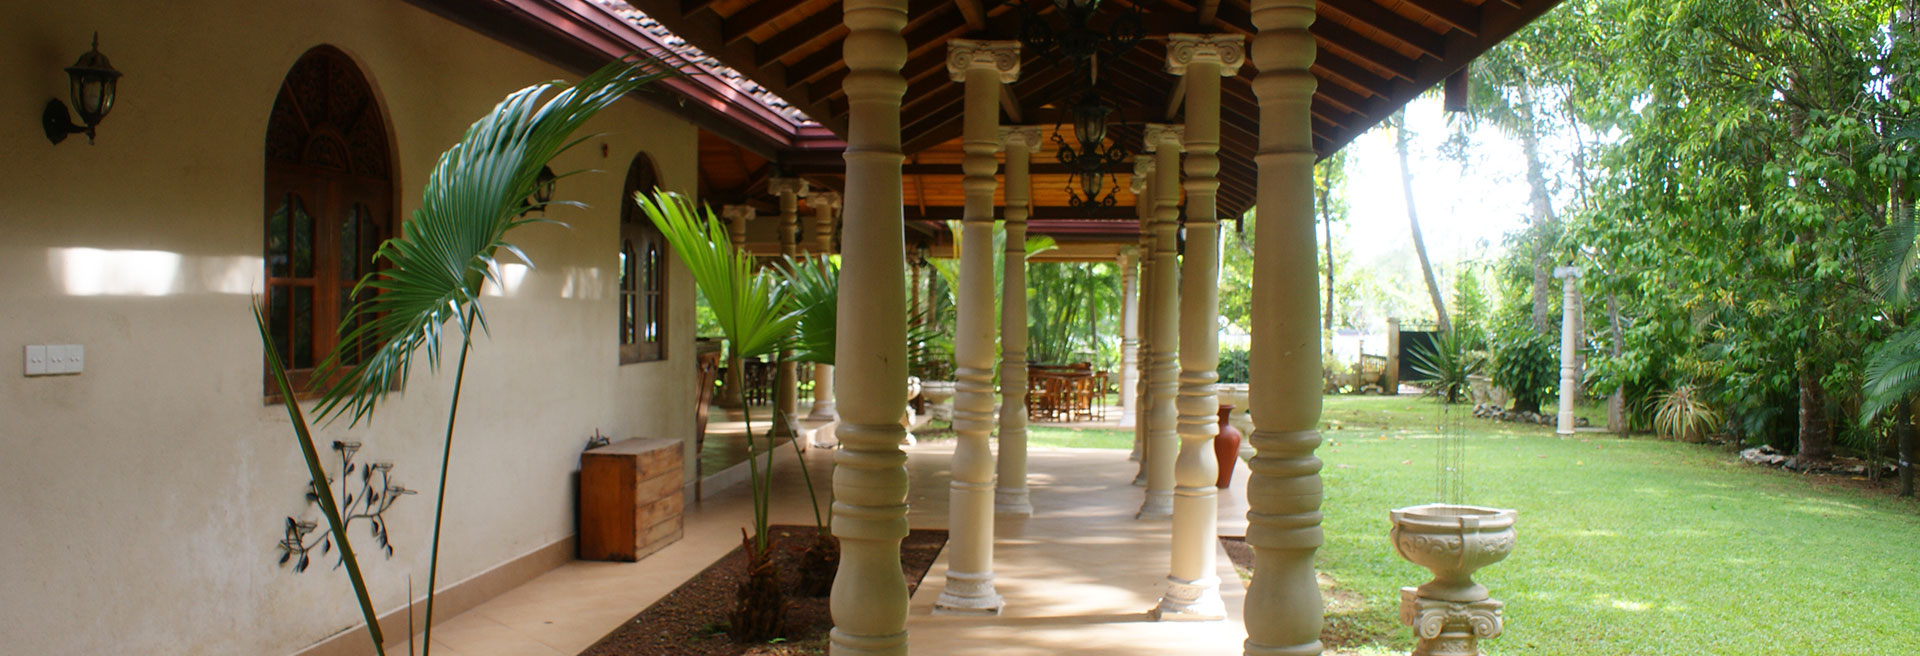 Walkway of the hotel